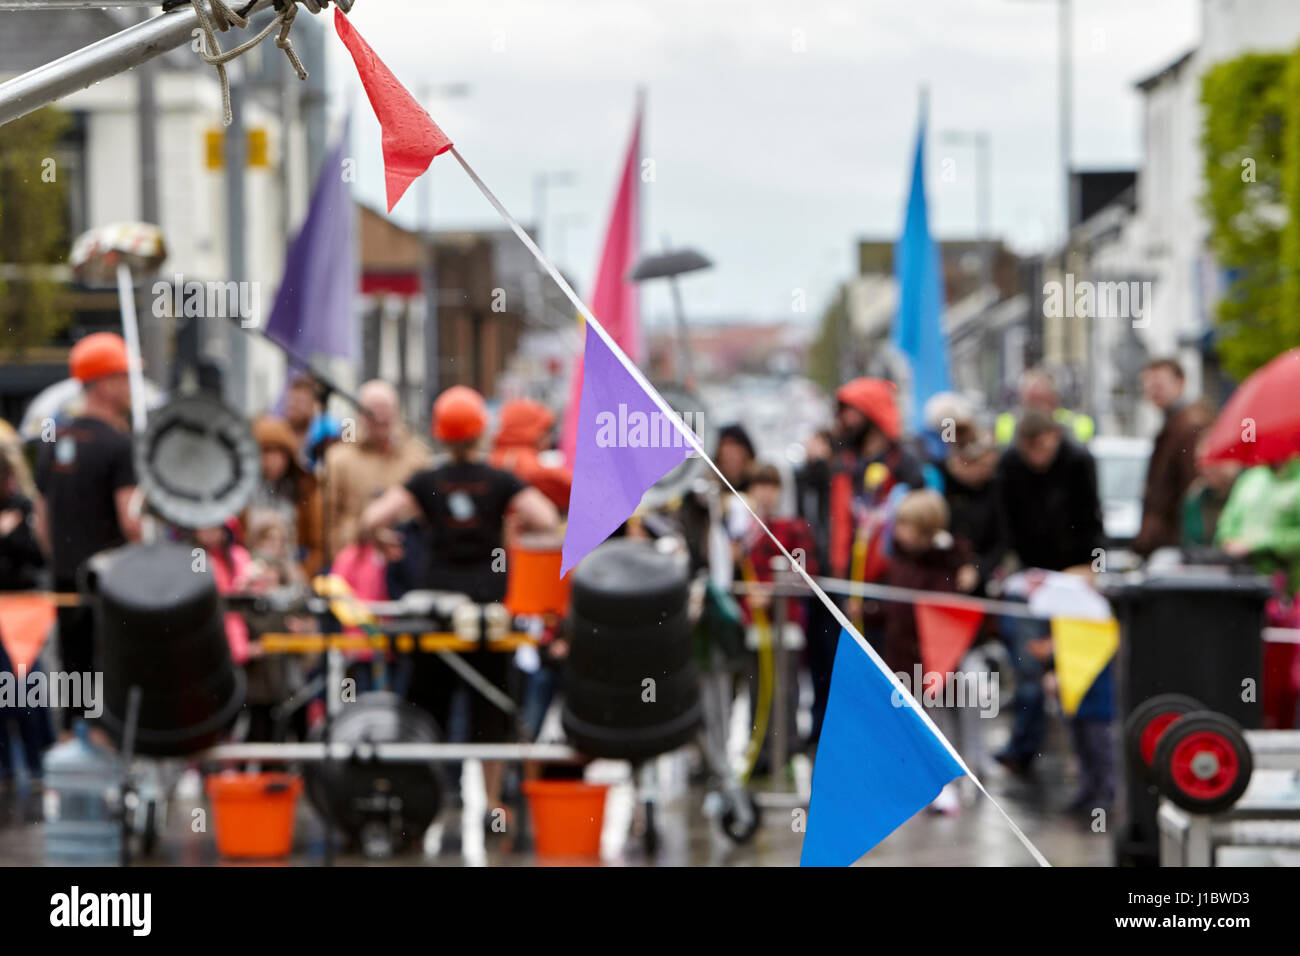 wet plastic bunting outdoors on a wet outdoor event in the uk - Stock Image